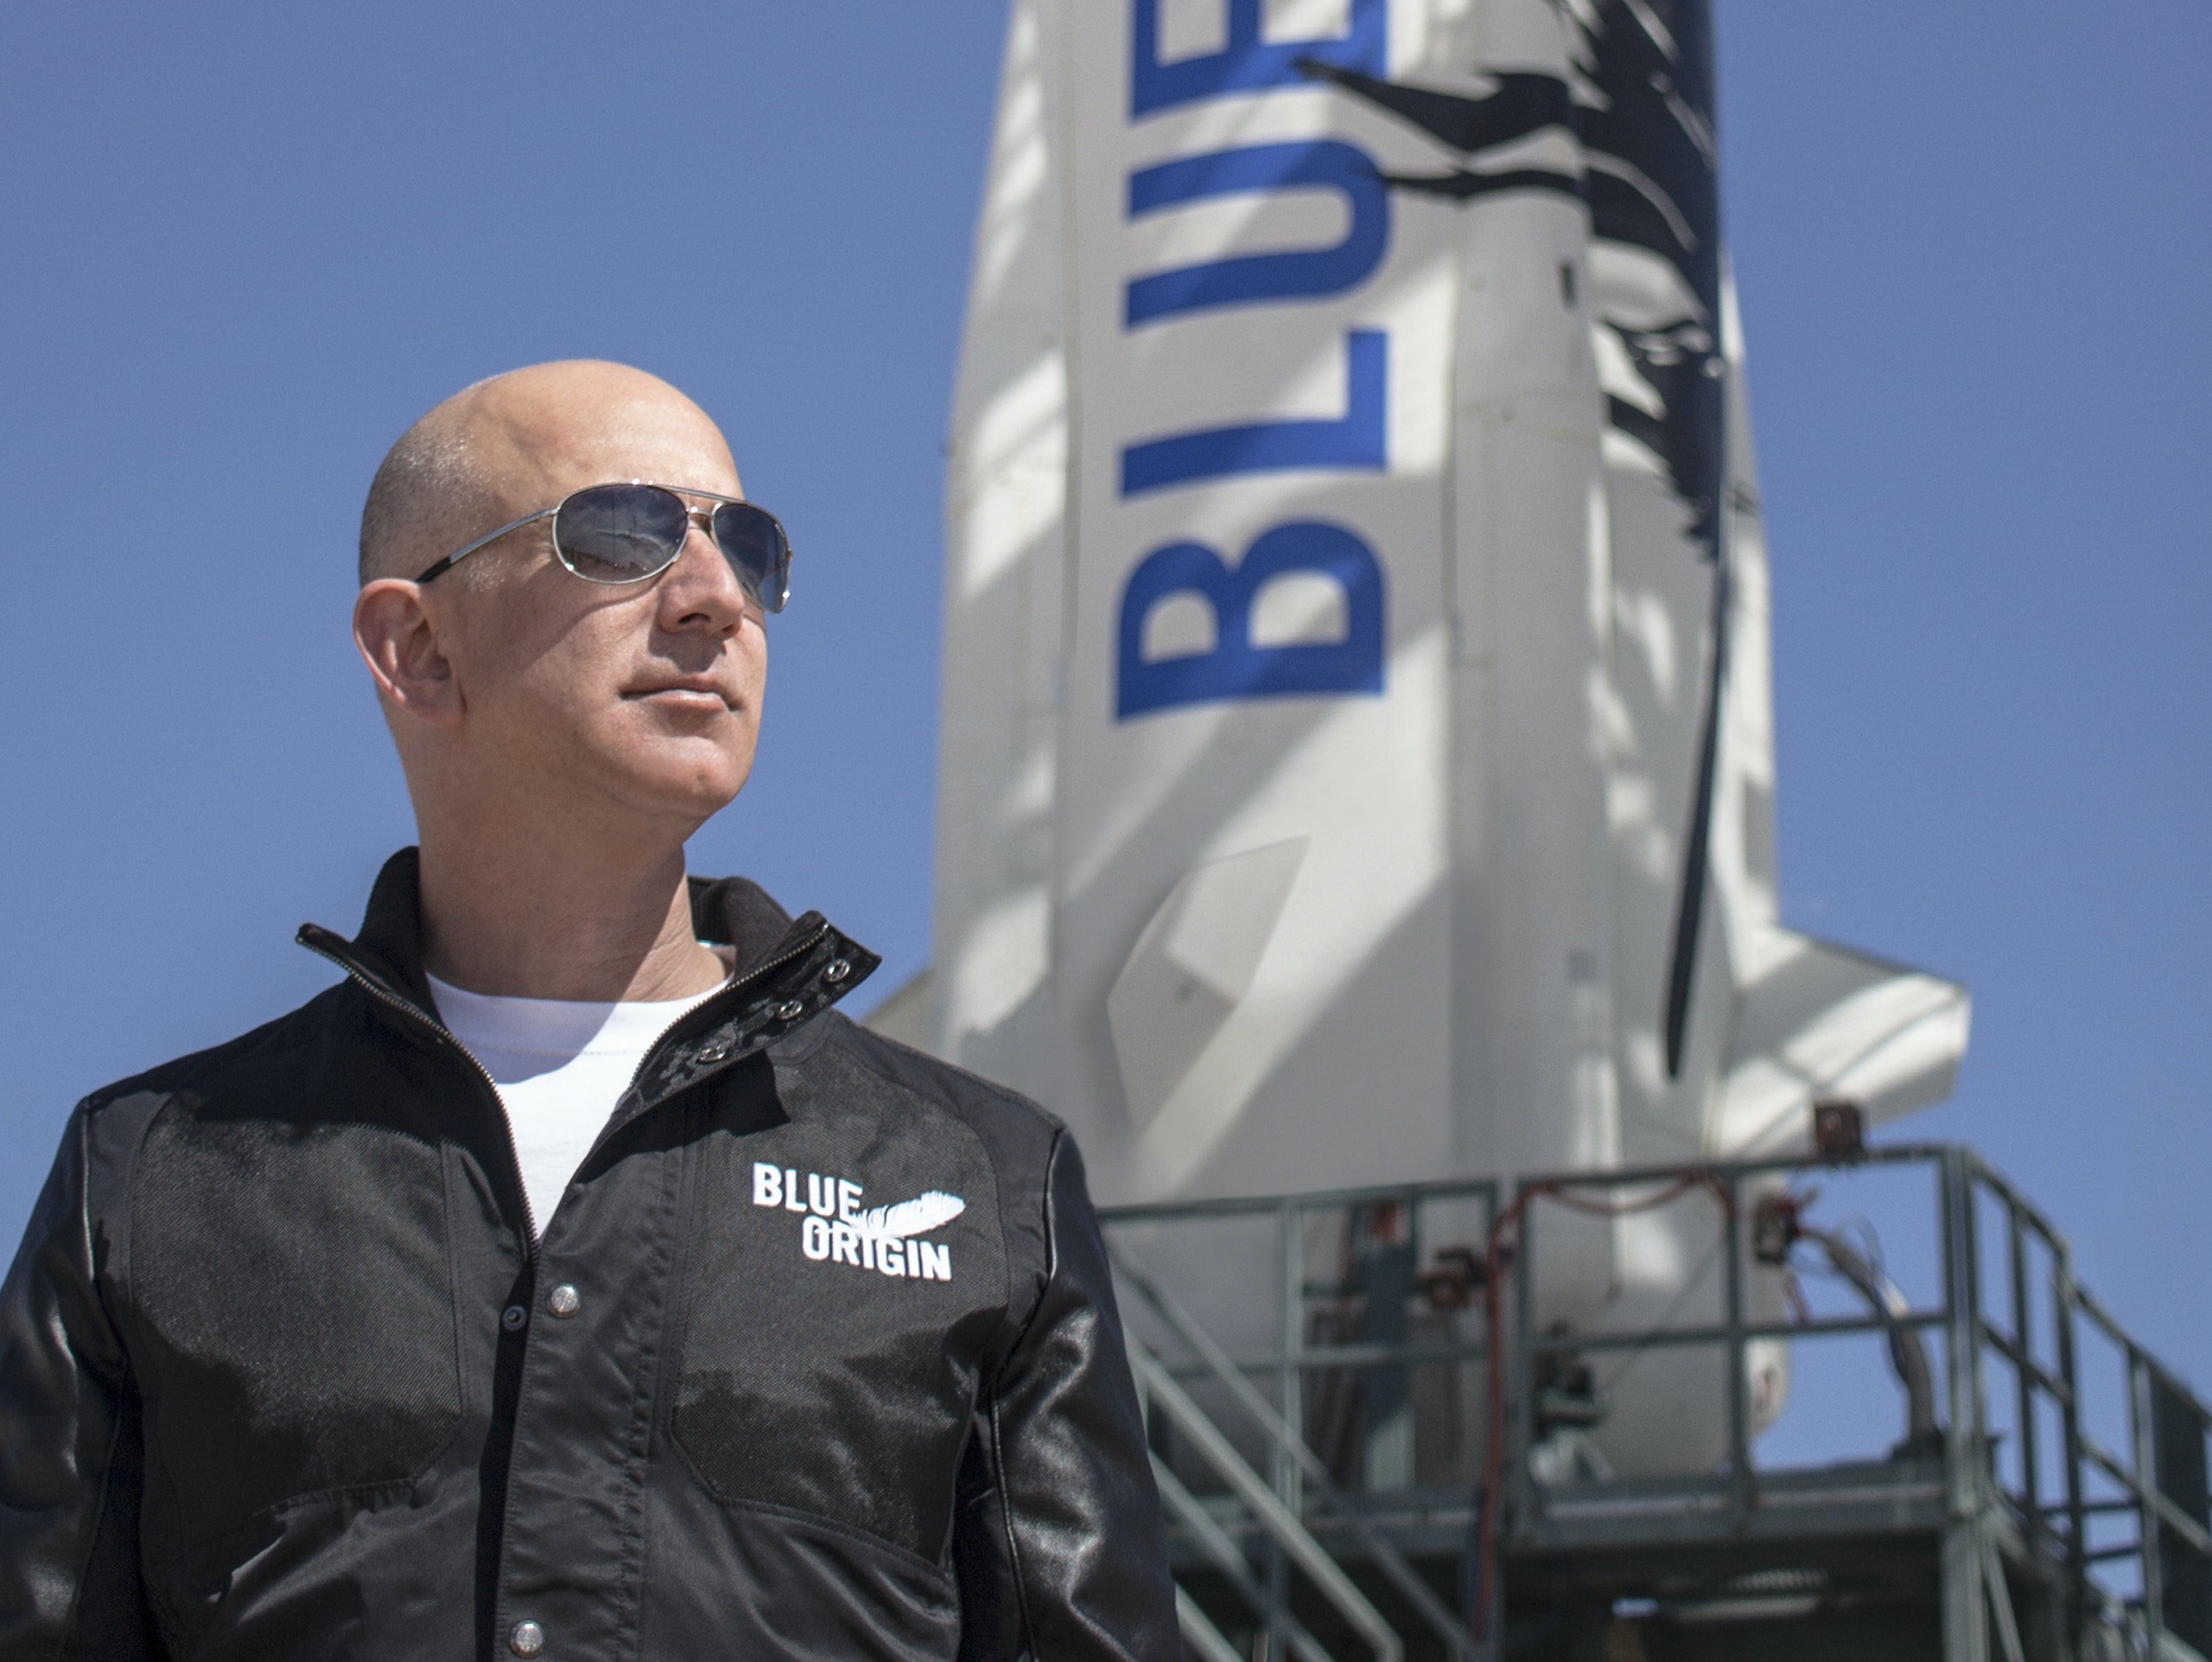 Blue Origin is on track to launch people as soon as next year.